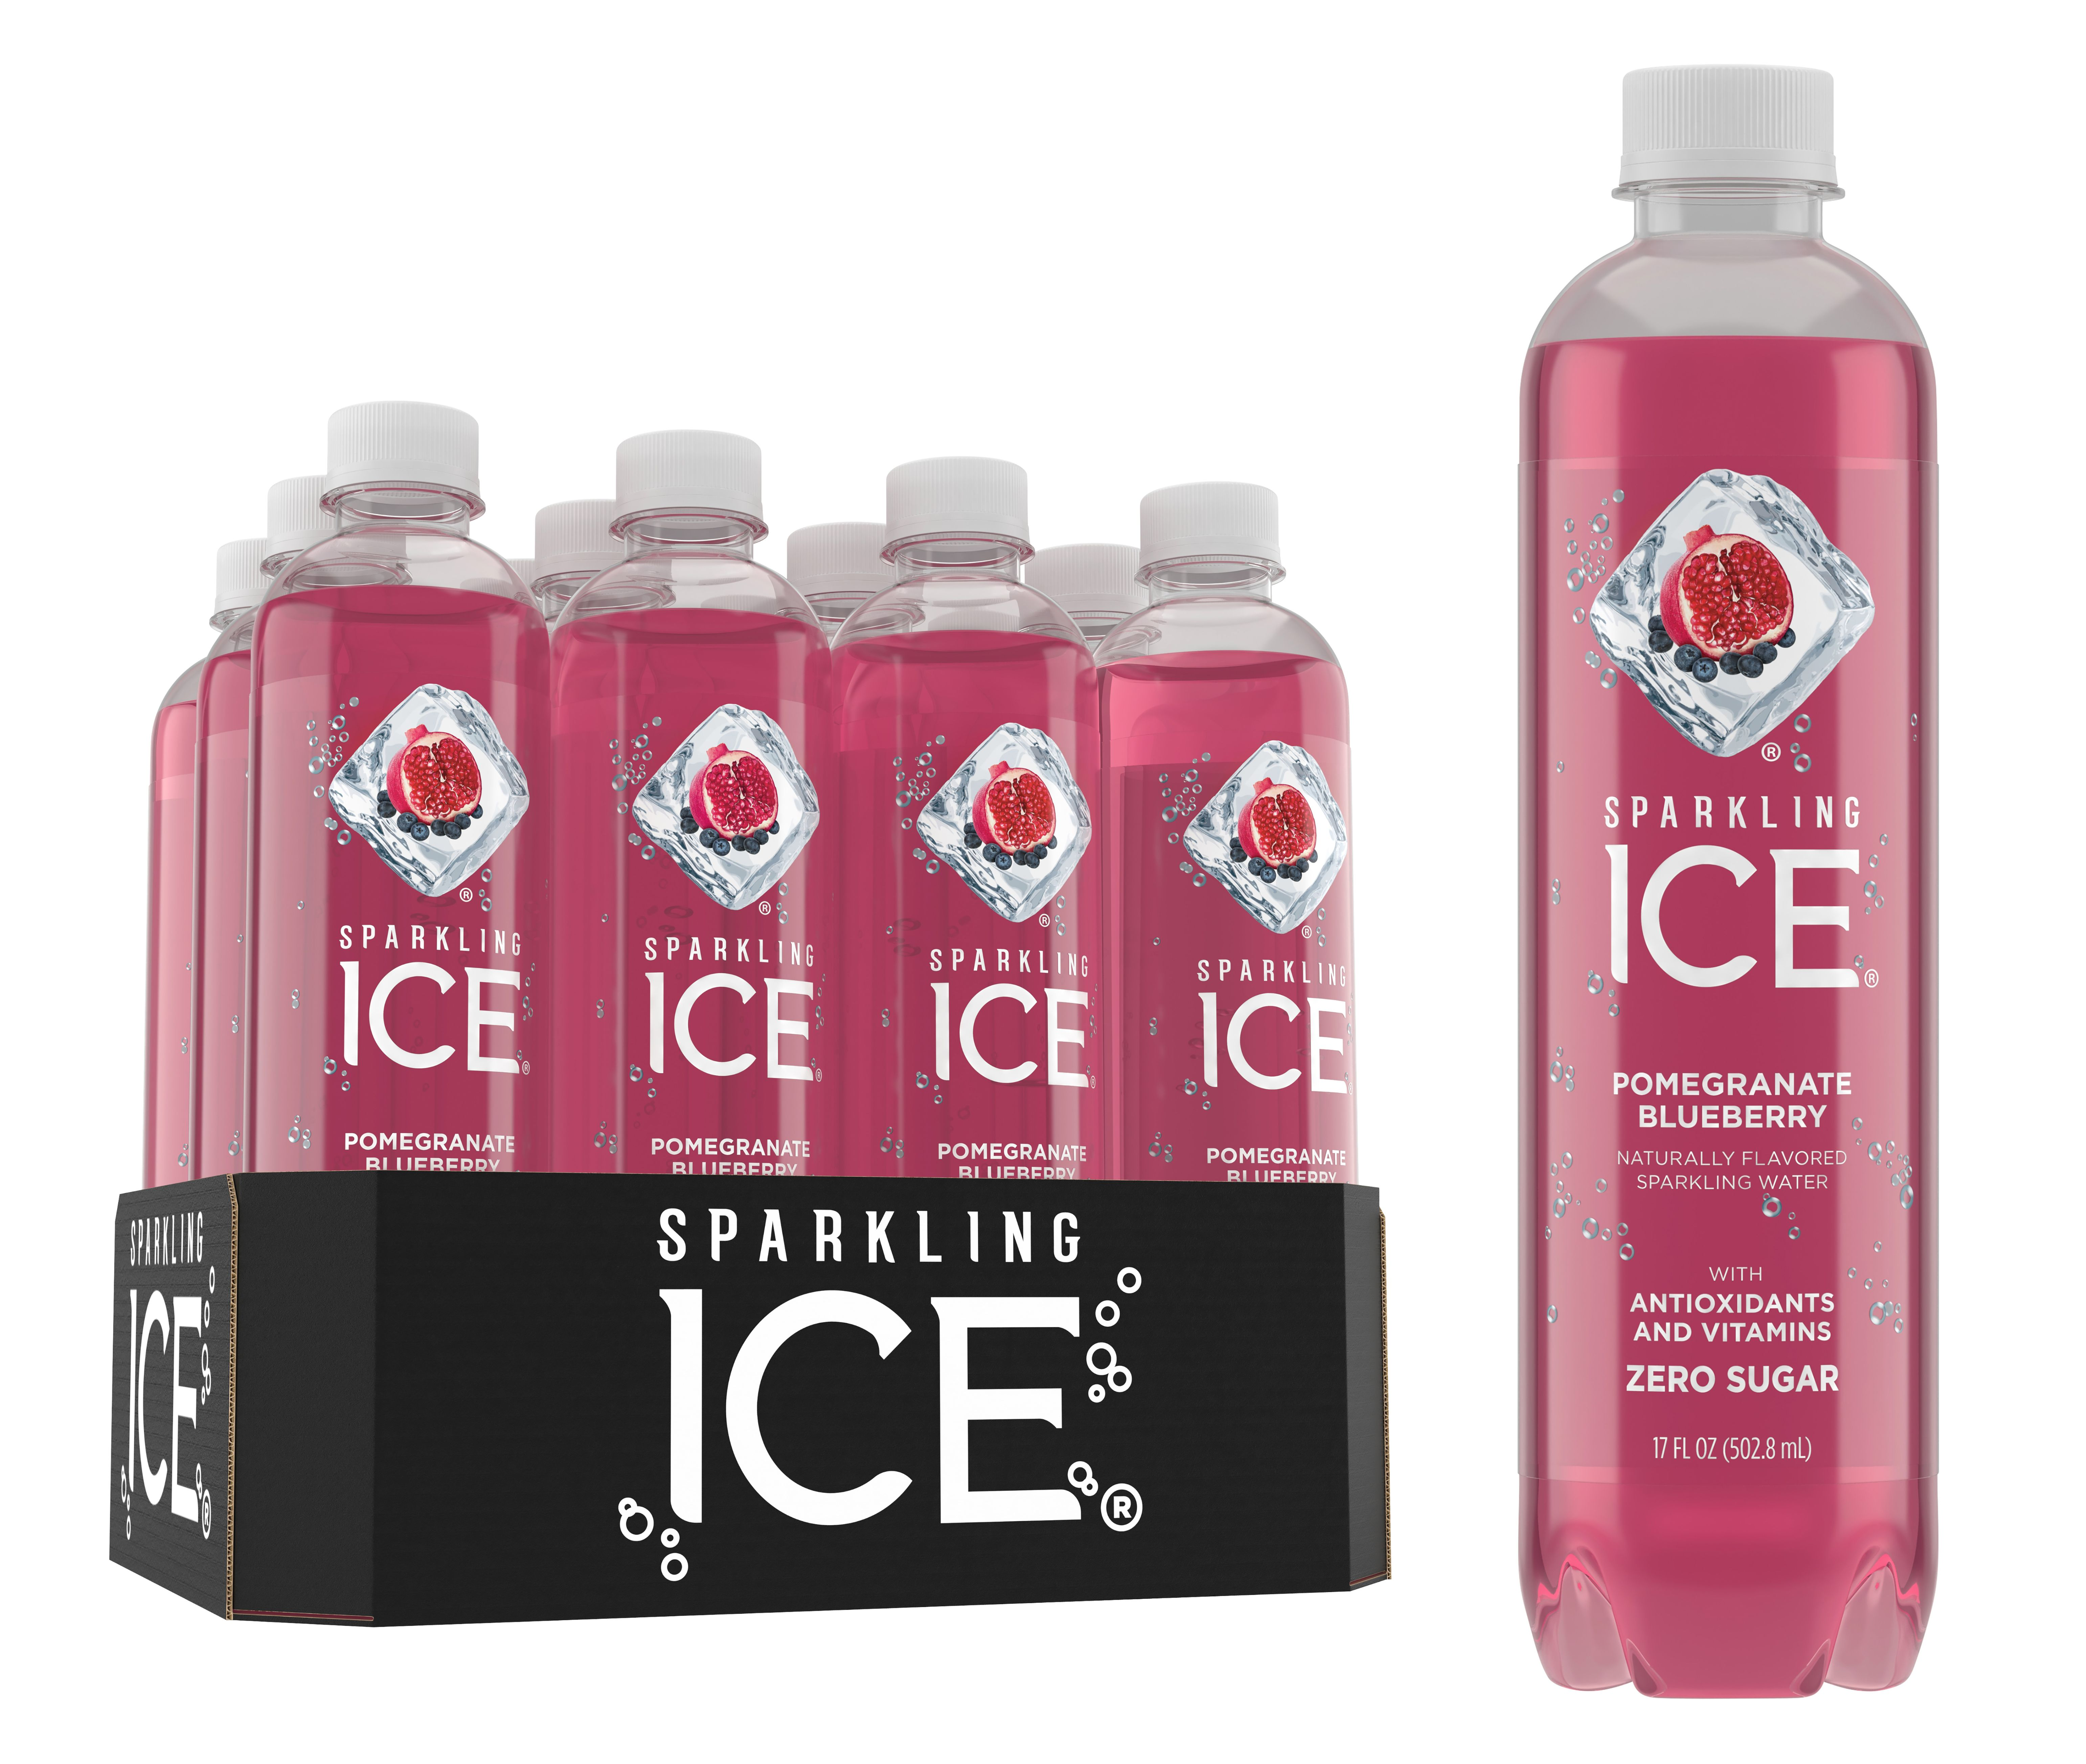 Food Blueberry Water Pomegranate Juice Drinks